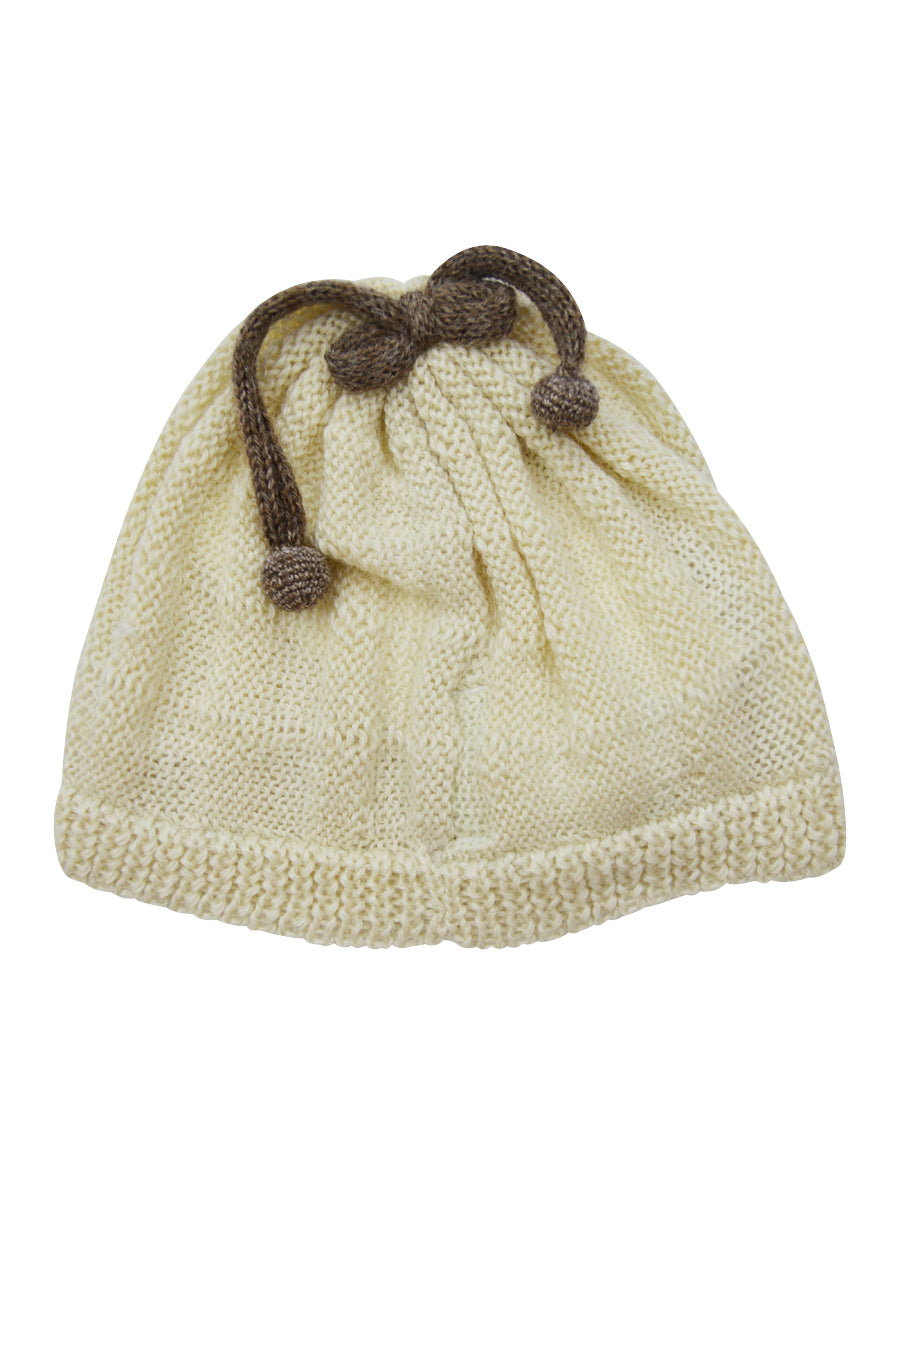 Ivory Baby Alpaca Hat with Chocolate Brown Pom Pom - Little Threads Inc. Children's Clothing